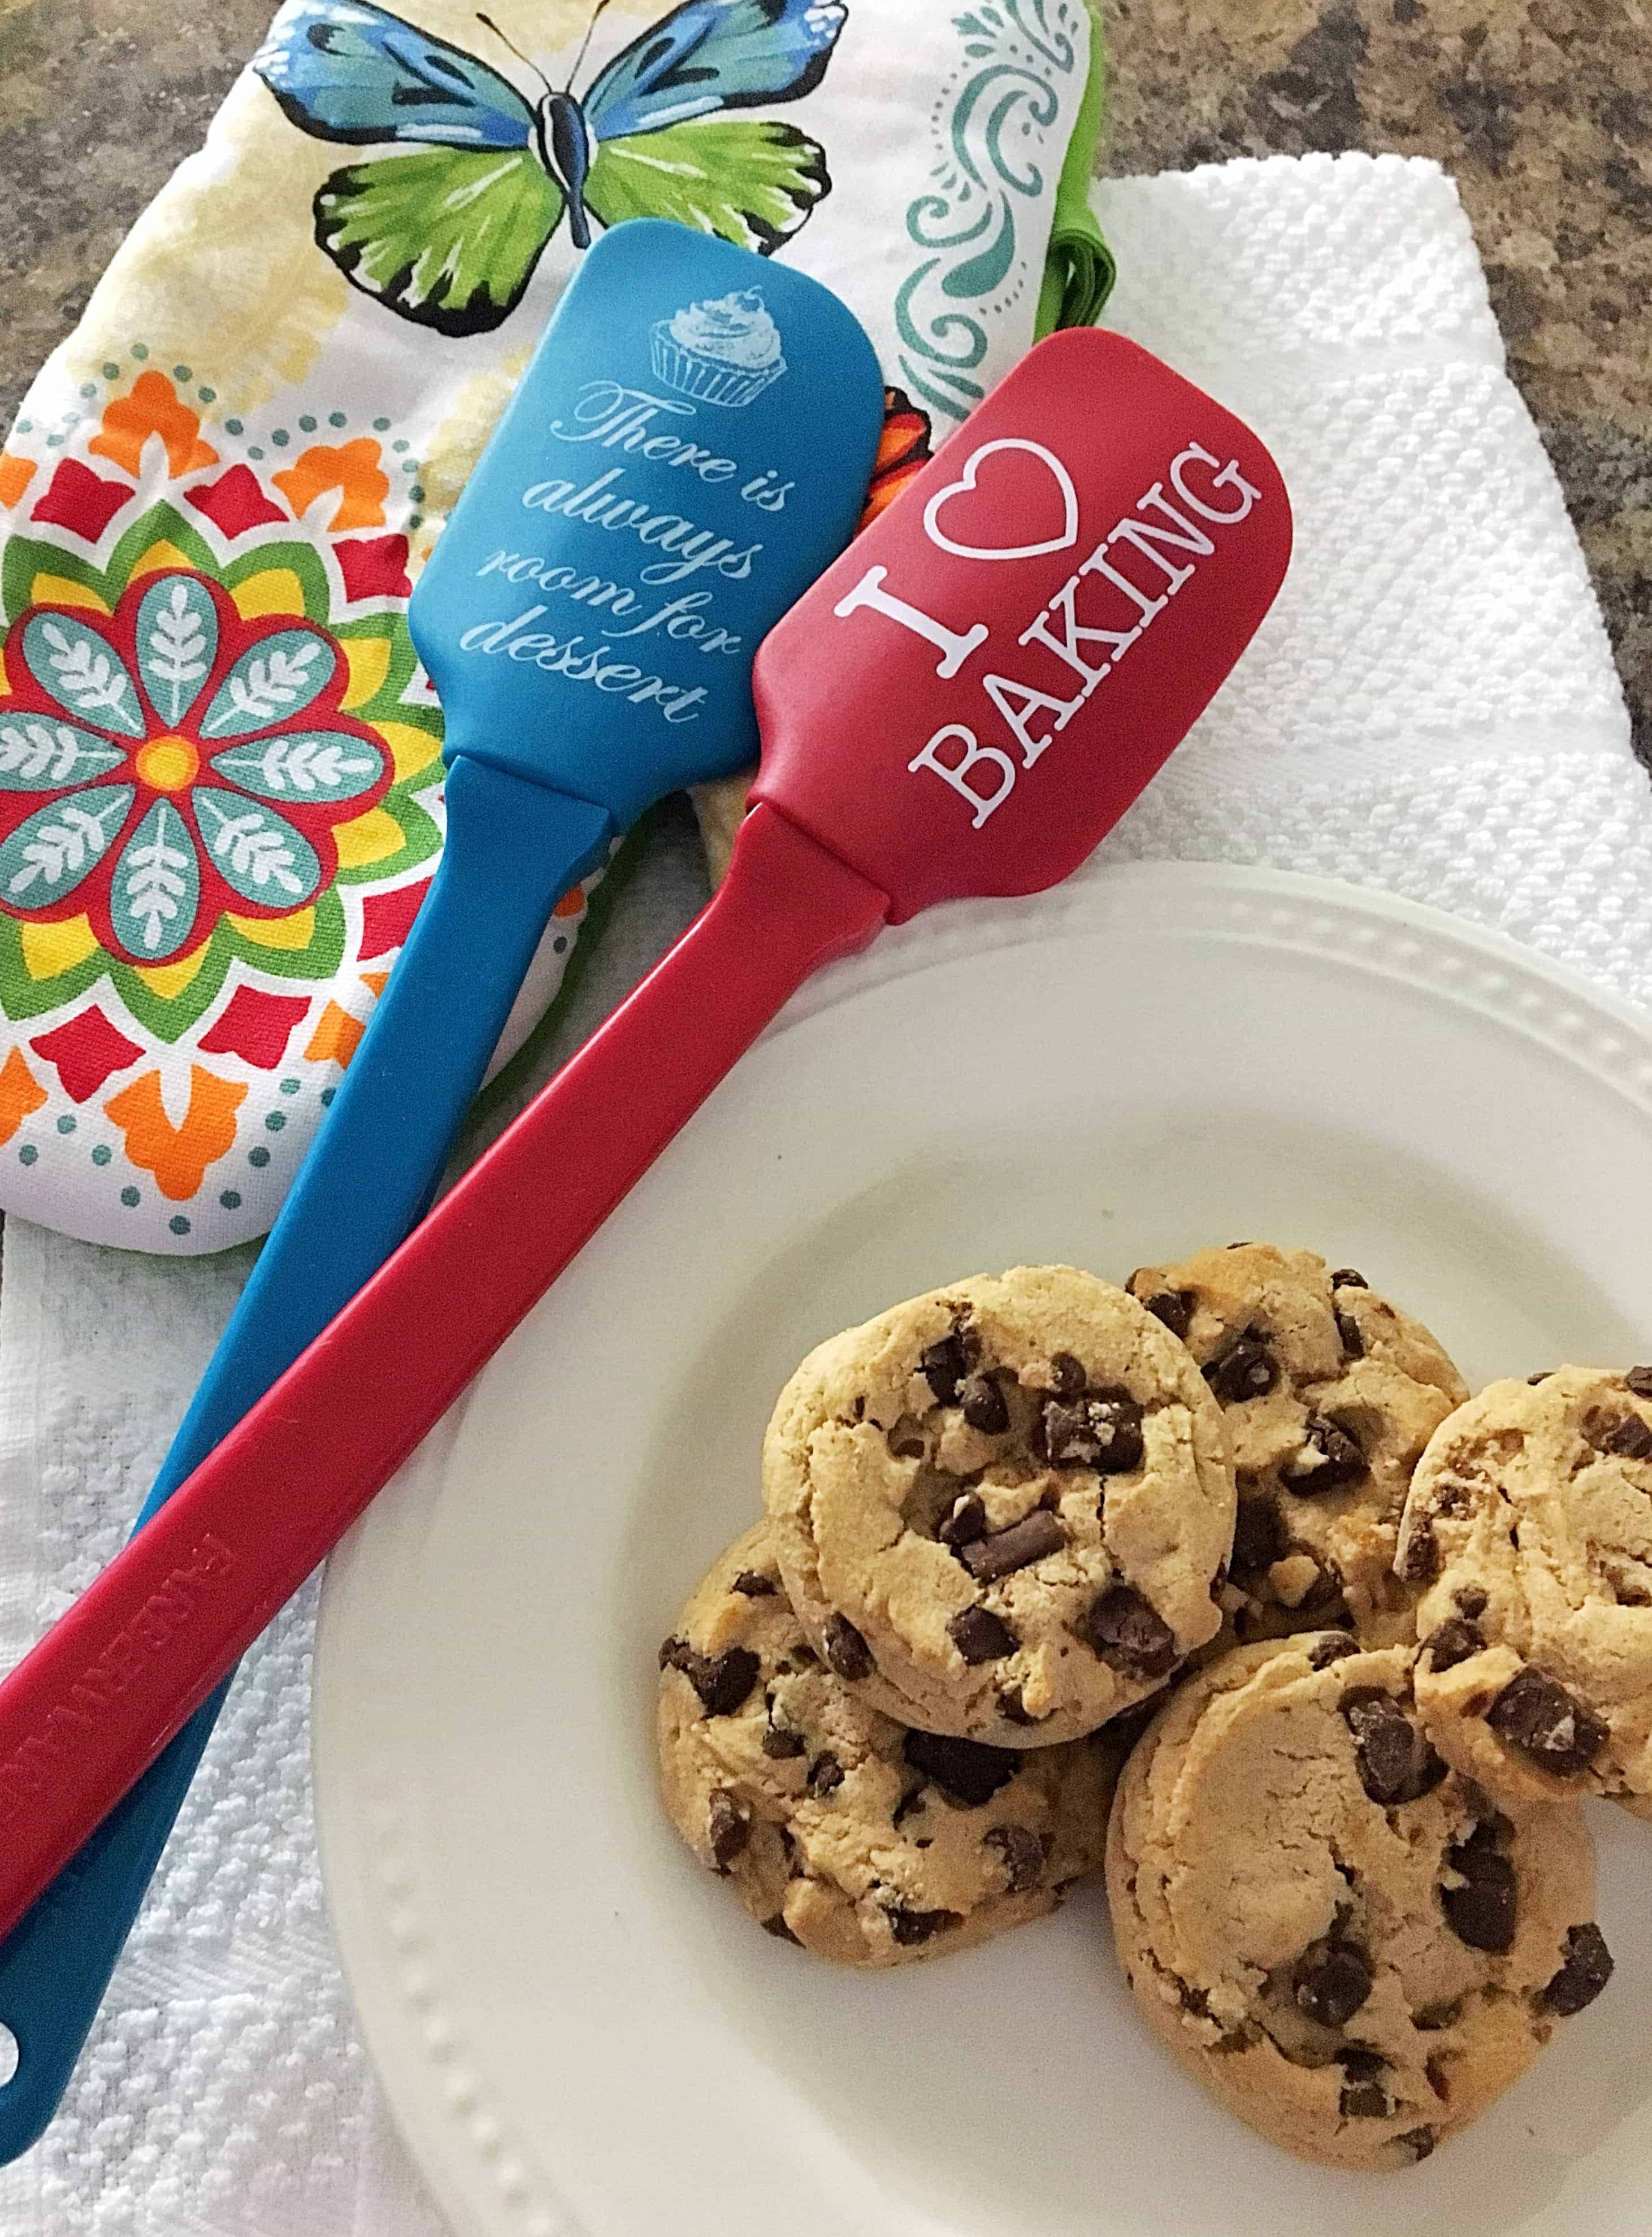 20 Adorable & Useful Christmas Gifts for the Baking Lover - Kindly ...